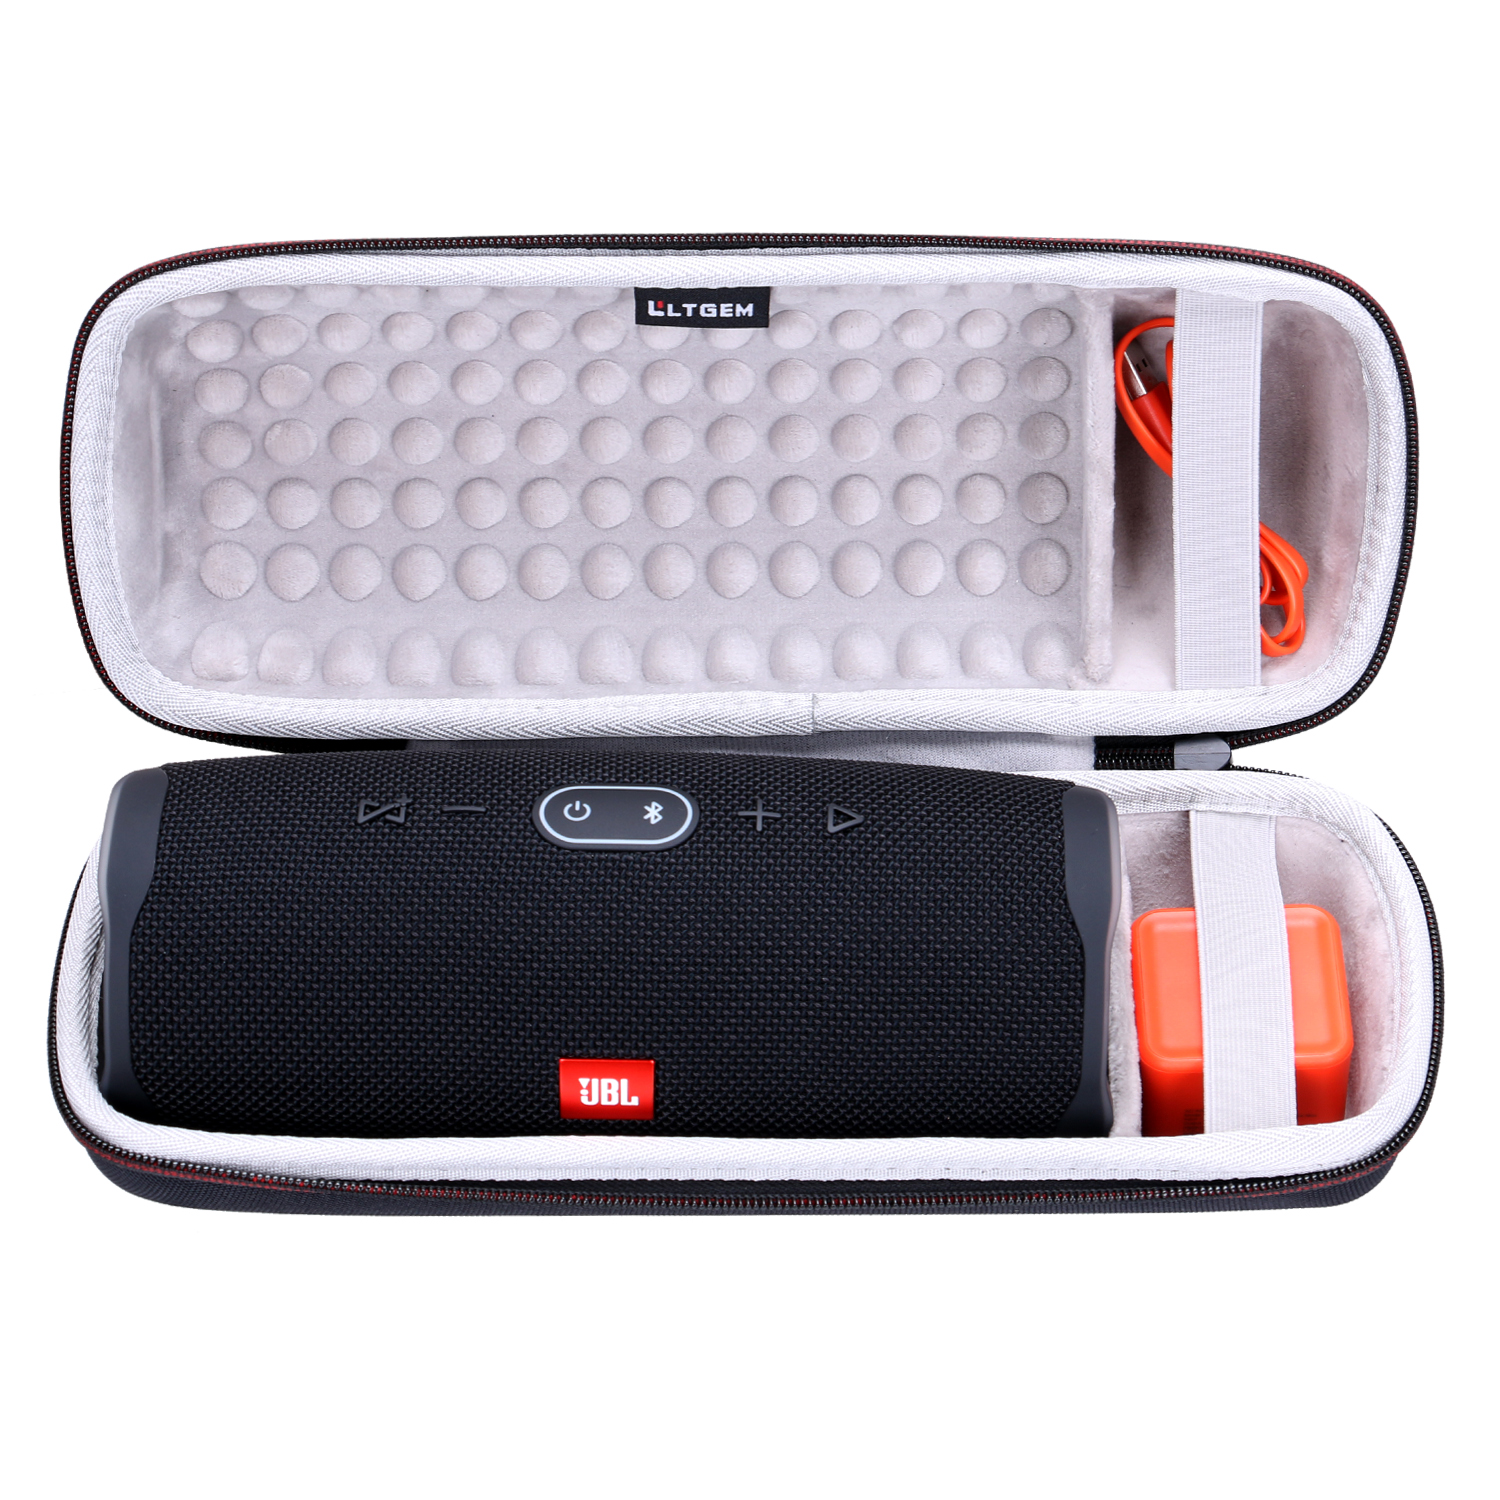 Ltgem Case For JBL Charge 4 Portable Hard Wireless Bluetooth Speaker Fits USB Cable And Charger Black Gray White Storage Case